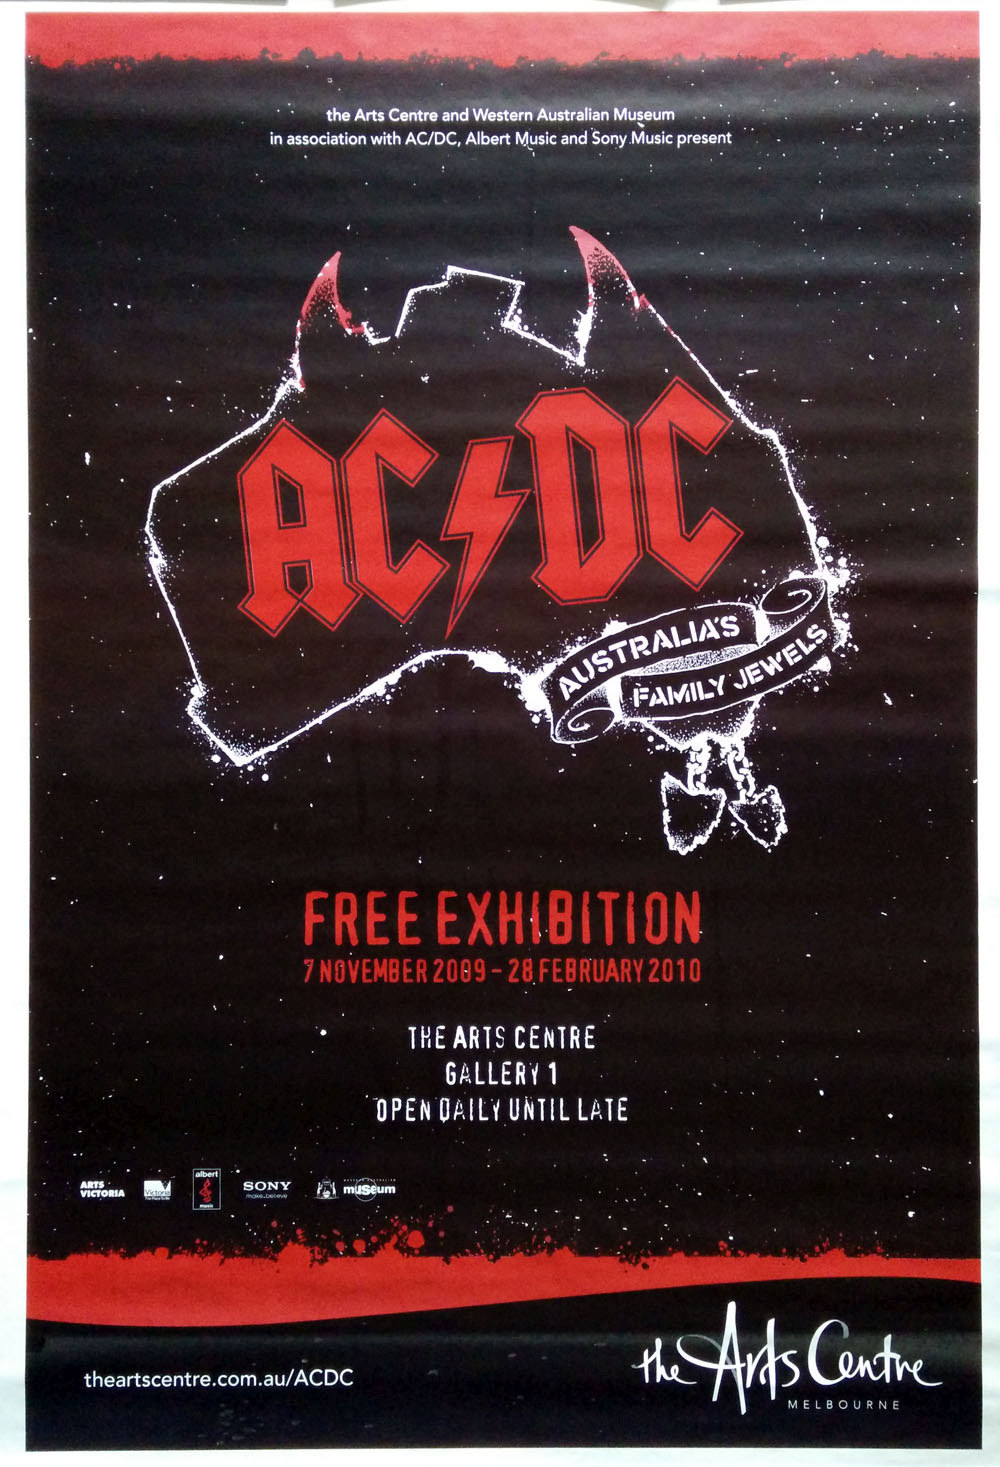 ac dc arts centre melbourne 2009 exhibition poster billboard sizes posters rare records. Black Bedroom Furniture Sets. Home Design Ideas